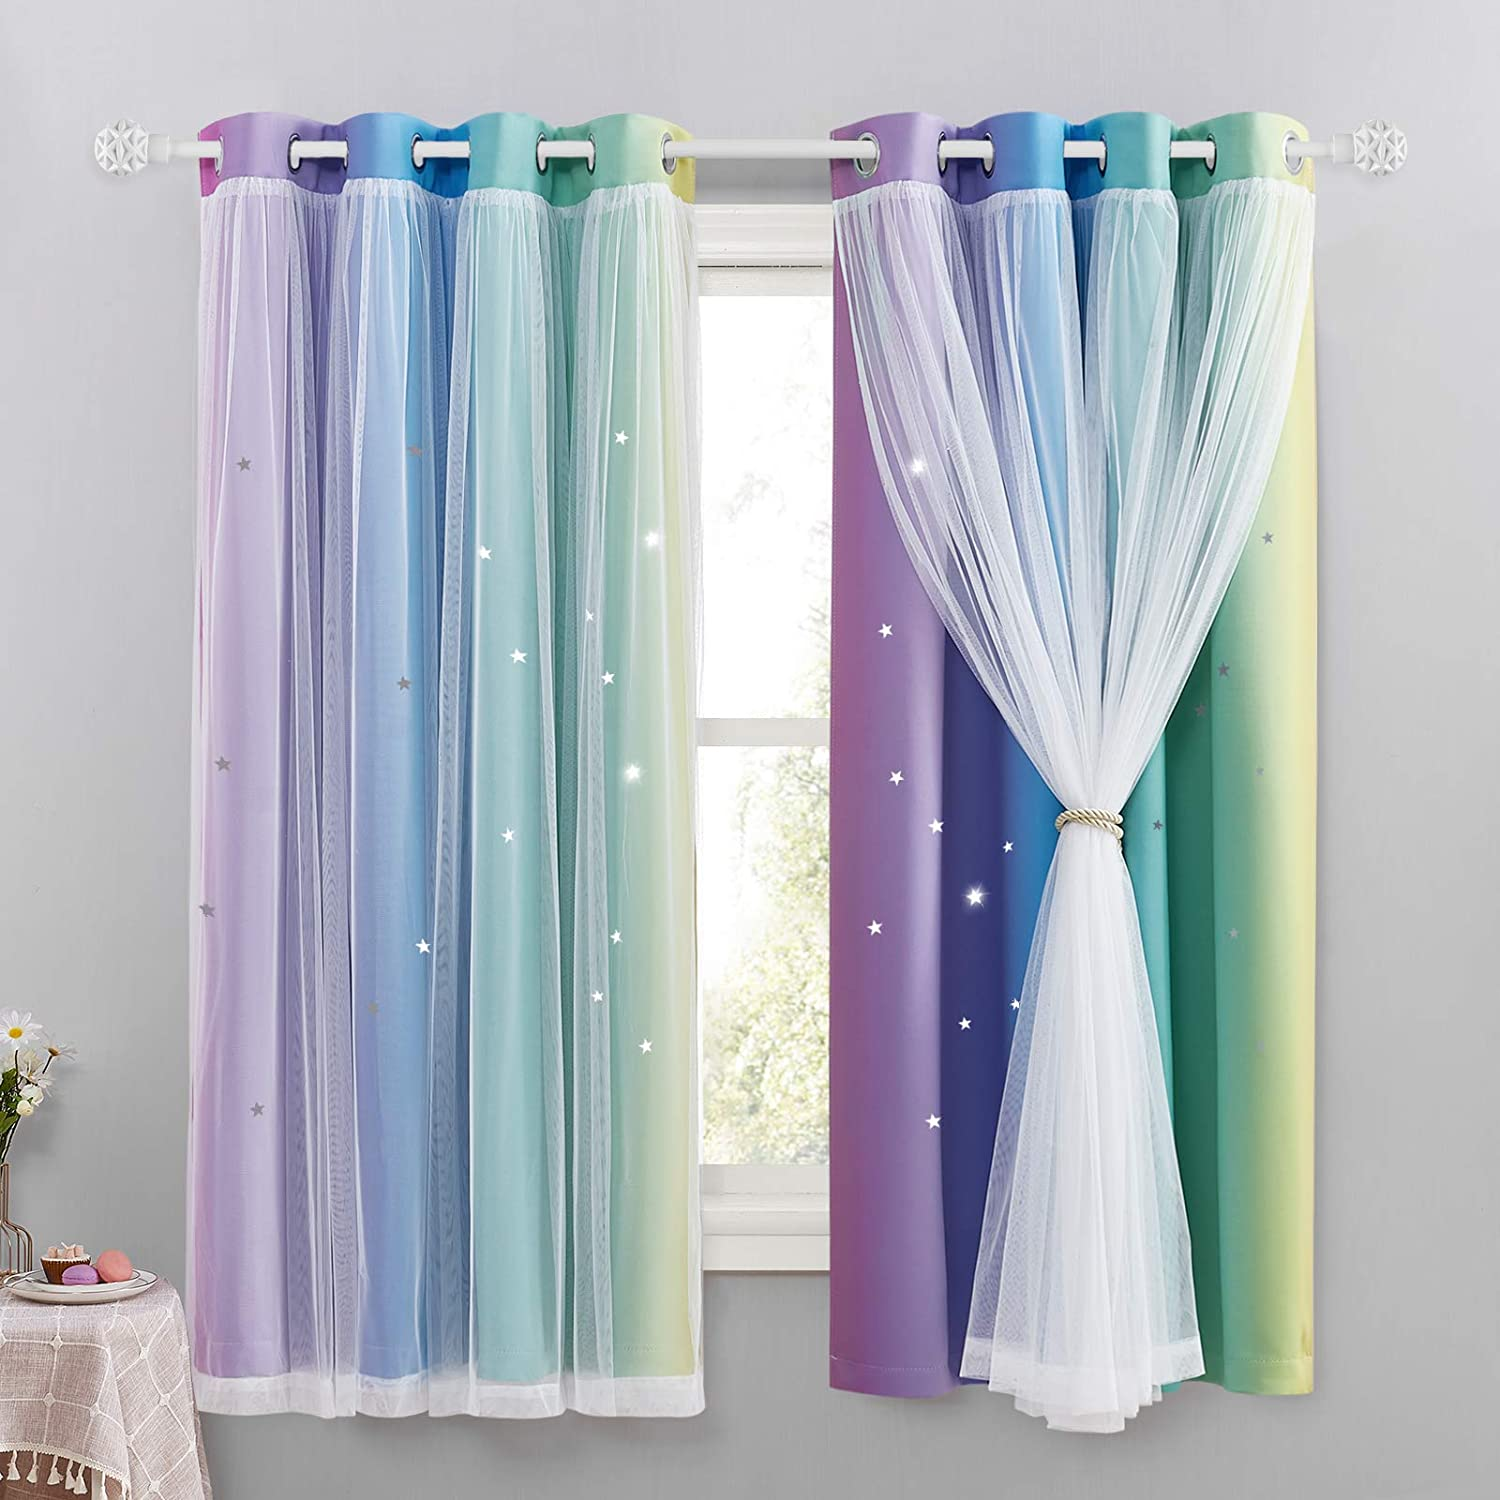 NICETOWN Bedroom Girls Curtains with Net - Kids Blackout Curtain with Hollow Out Design Mix Net Voile for Large Window Nursery Star Drapes for Girl